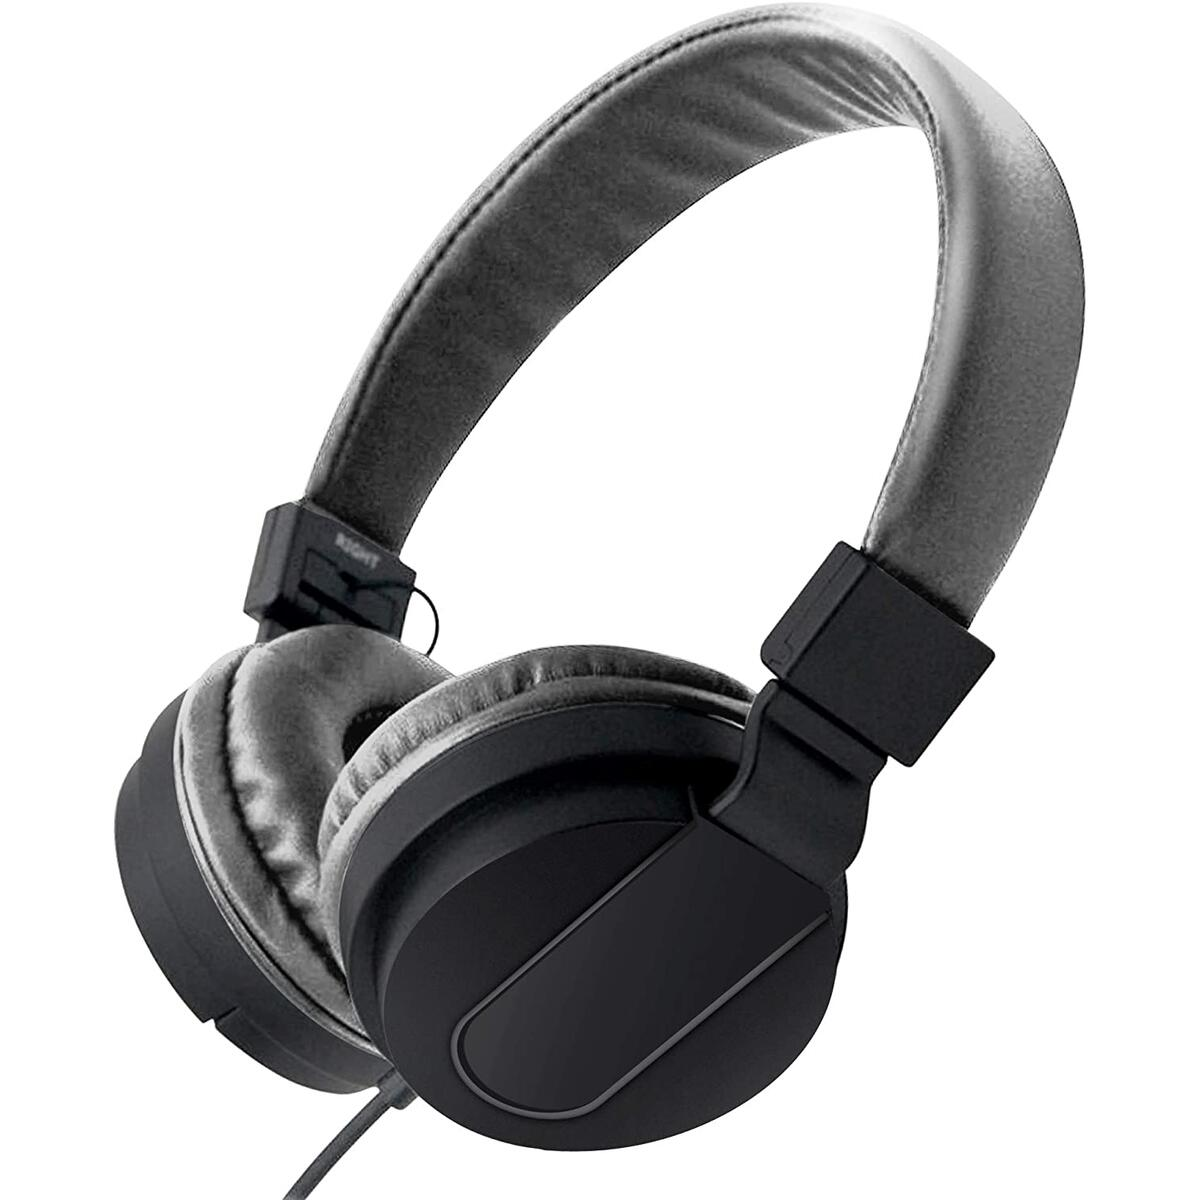 On-Ear Headphones with Built-in Mic, Portable Audio Headset with Adjustable Headband, Soft Ear Cushioned Pads, Foldable Design, for Phone or Computer Use, Hear Calls & Music Clearly - Chroma Black